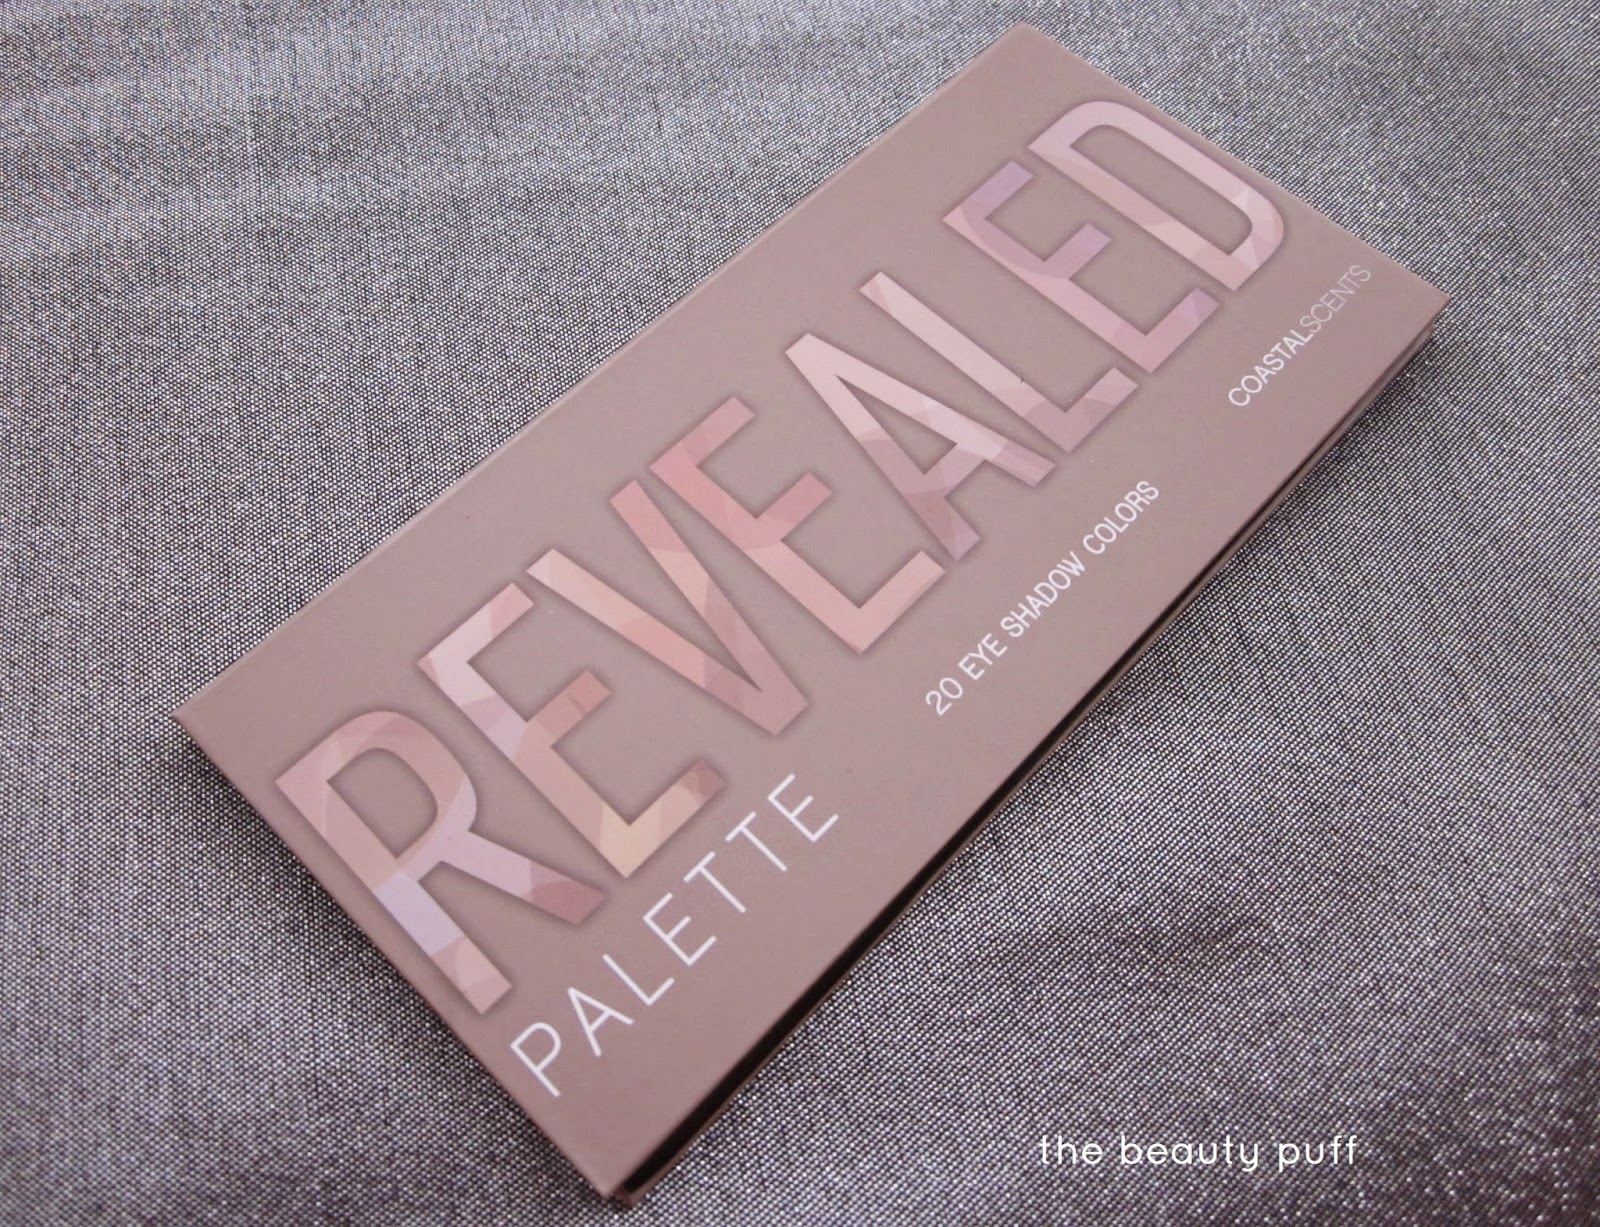 Coastal Scents Revealed Palette - The Beauty Puff